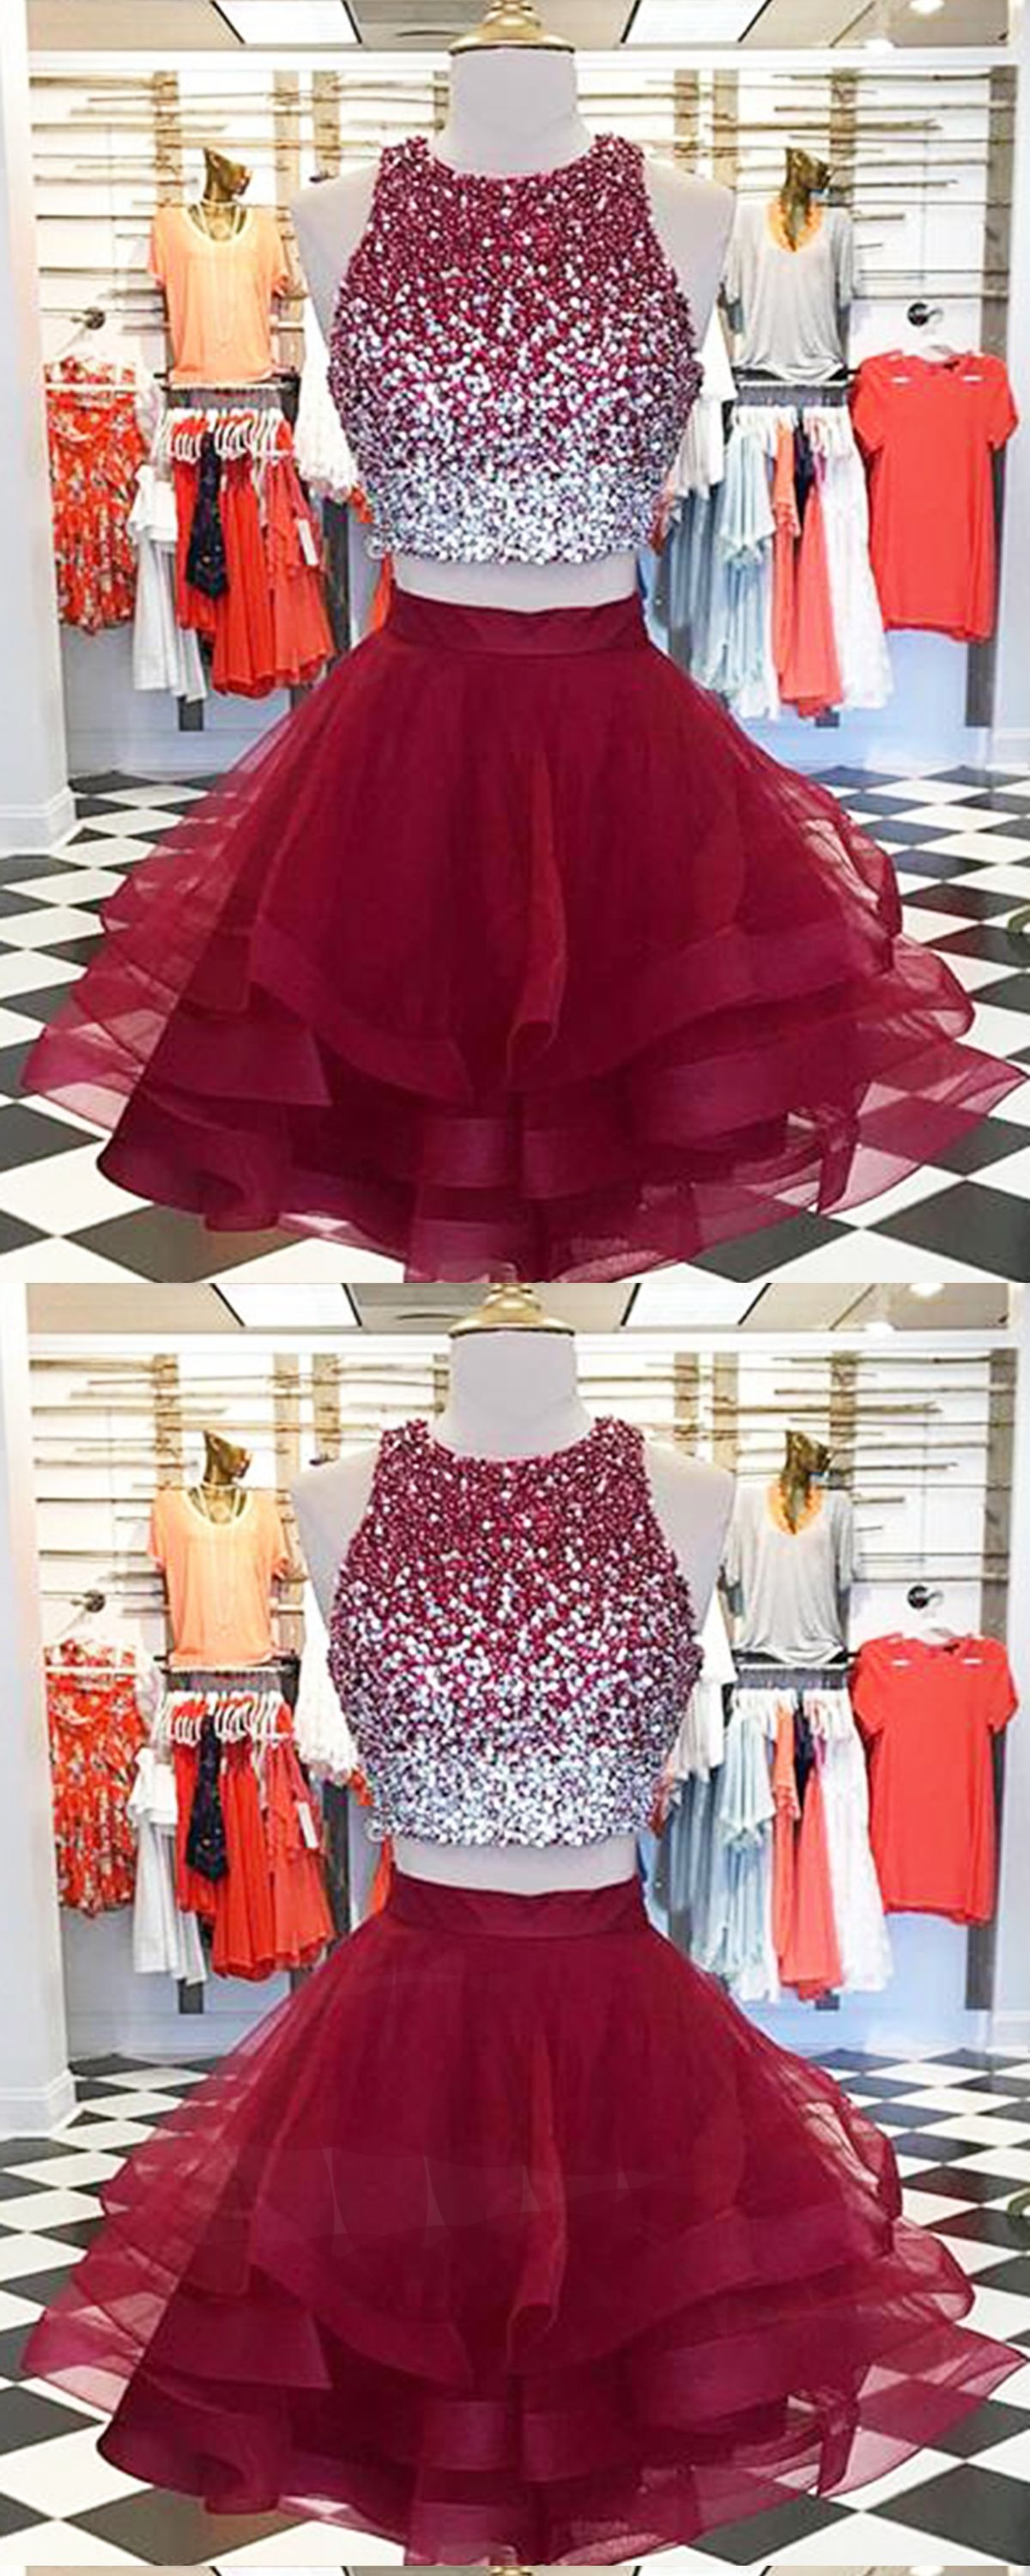 Burgundy tulle two pieces short homecoming dress with sequins in